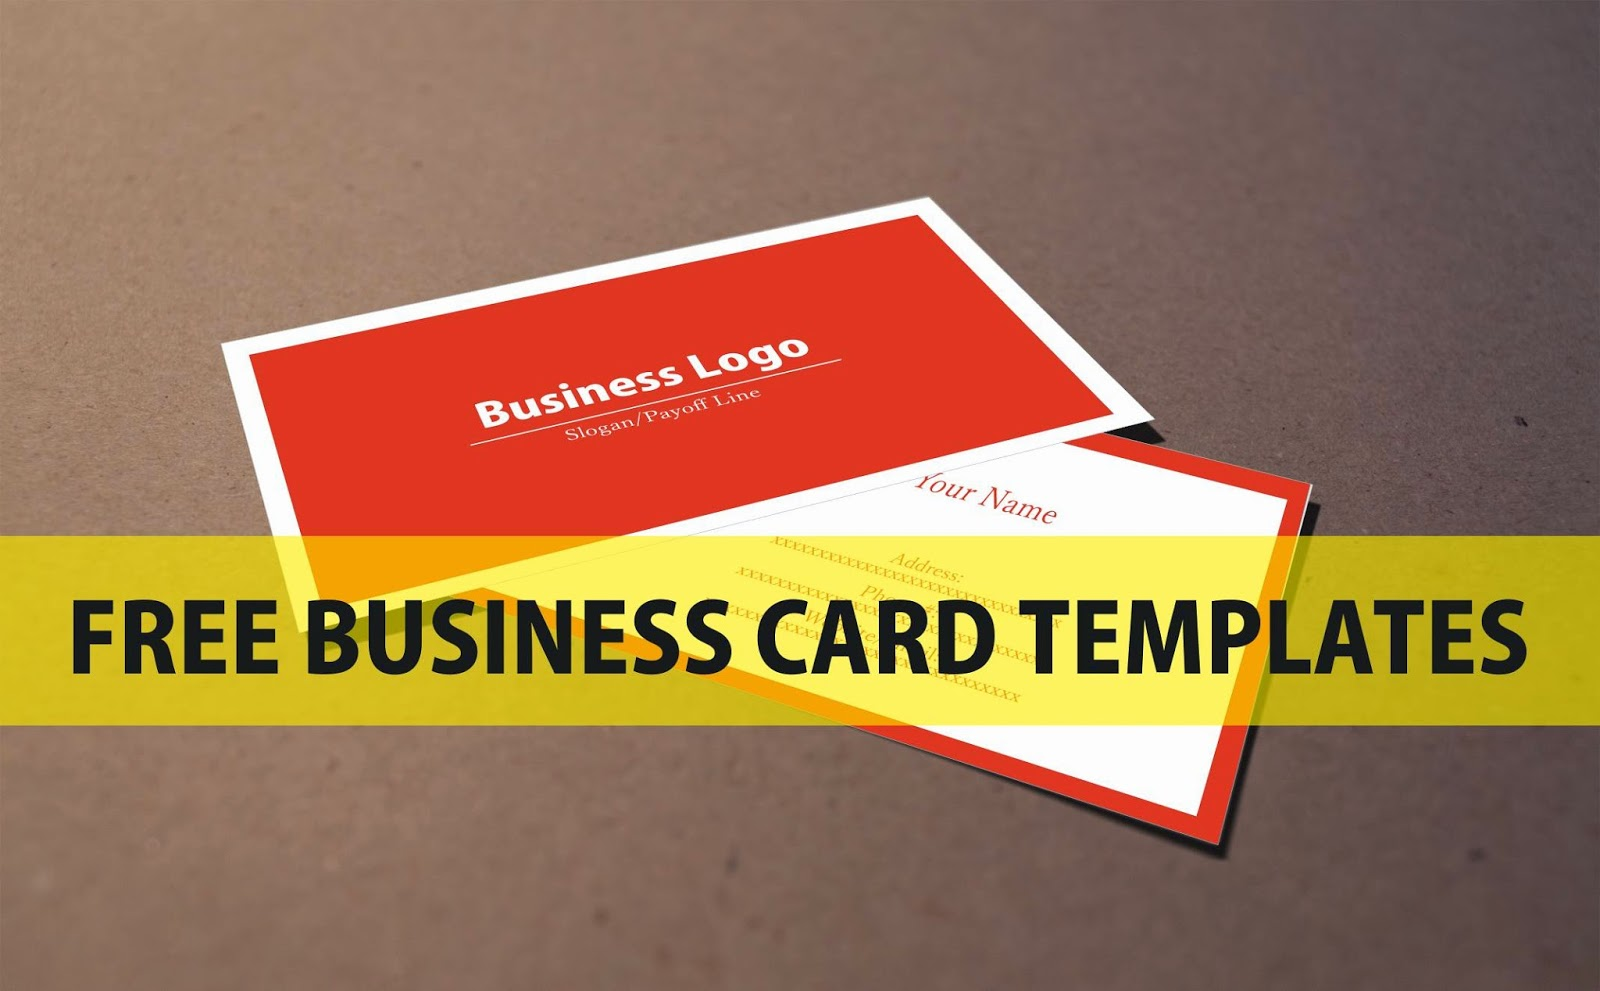 Free business card template download coreldraw file a graphic free business card template download coreldraw file fbccfo Choice Image